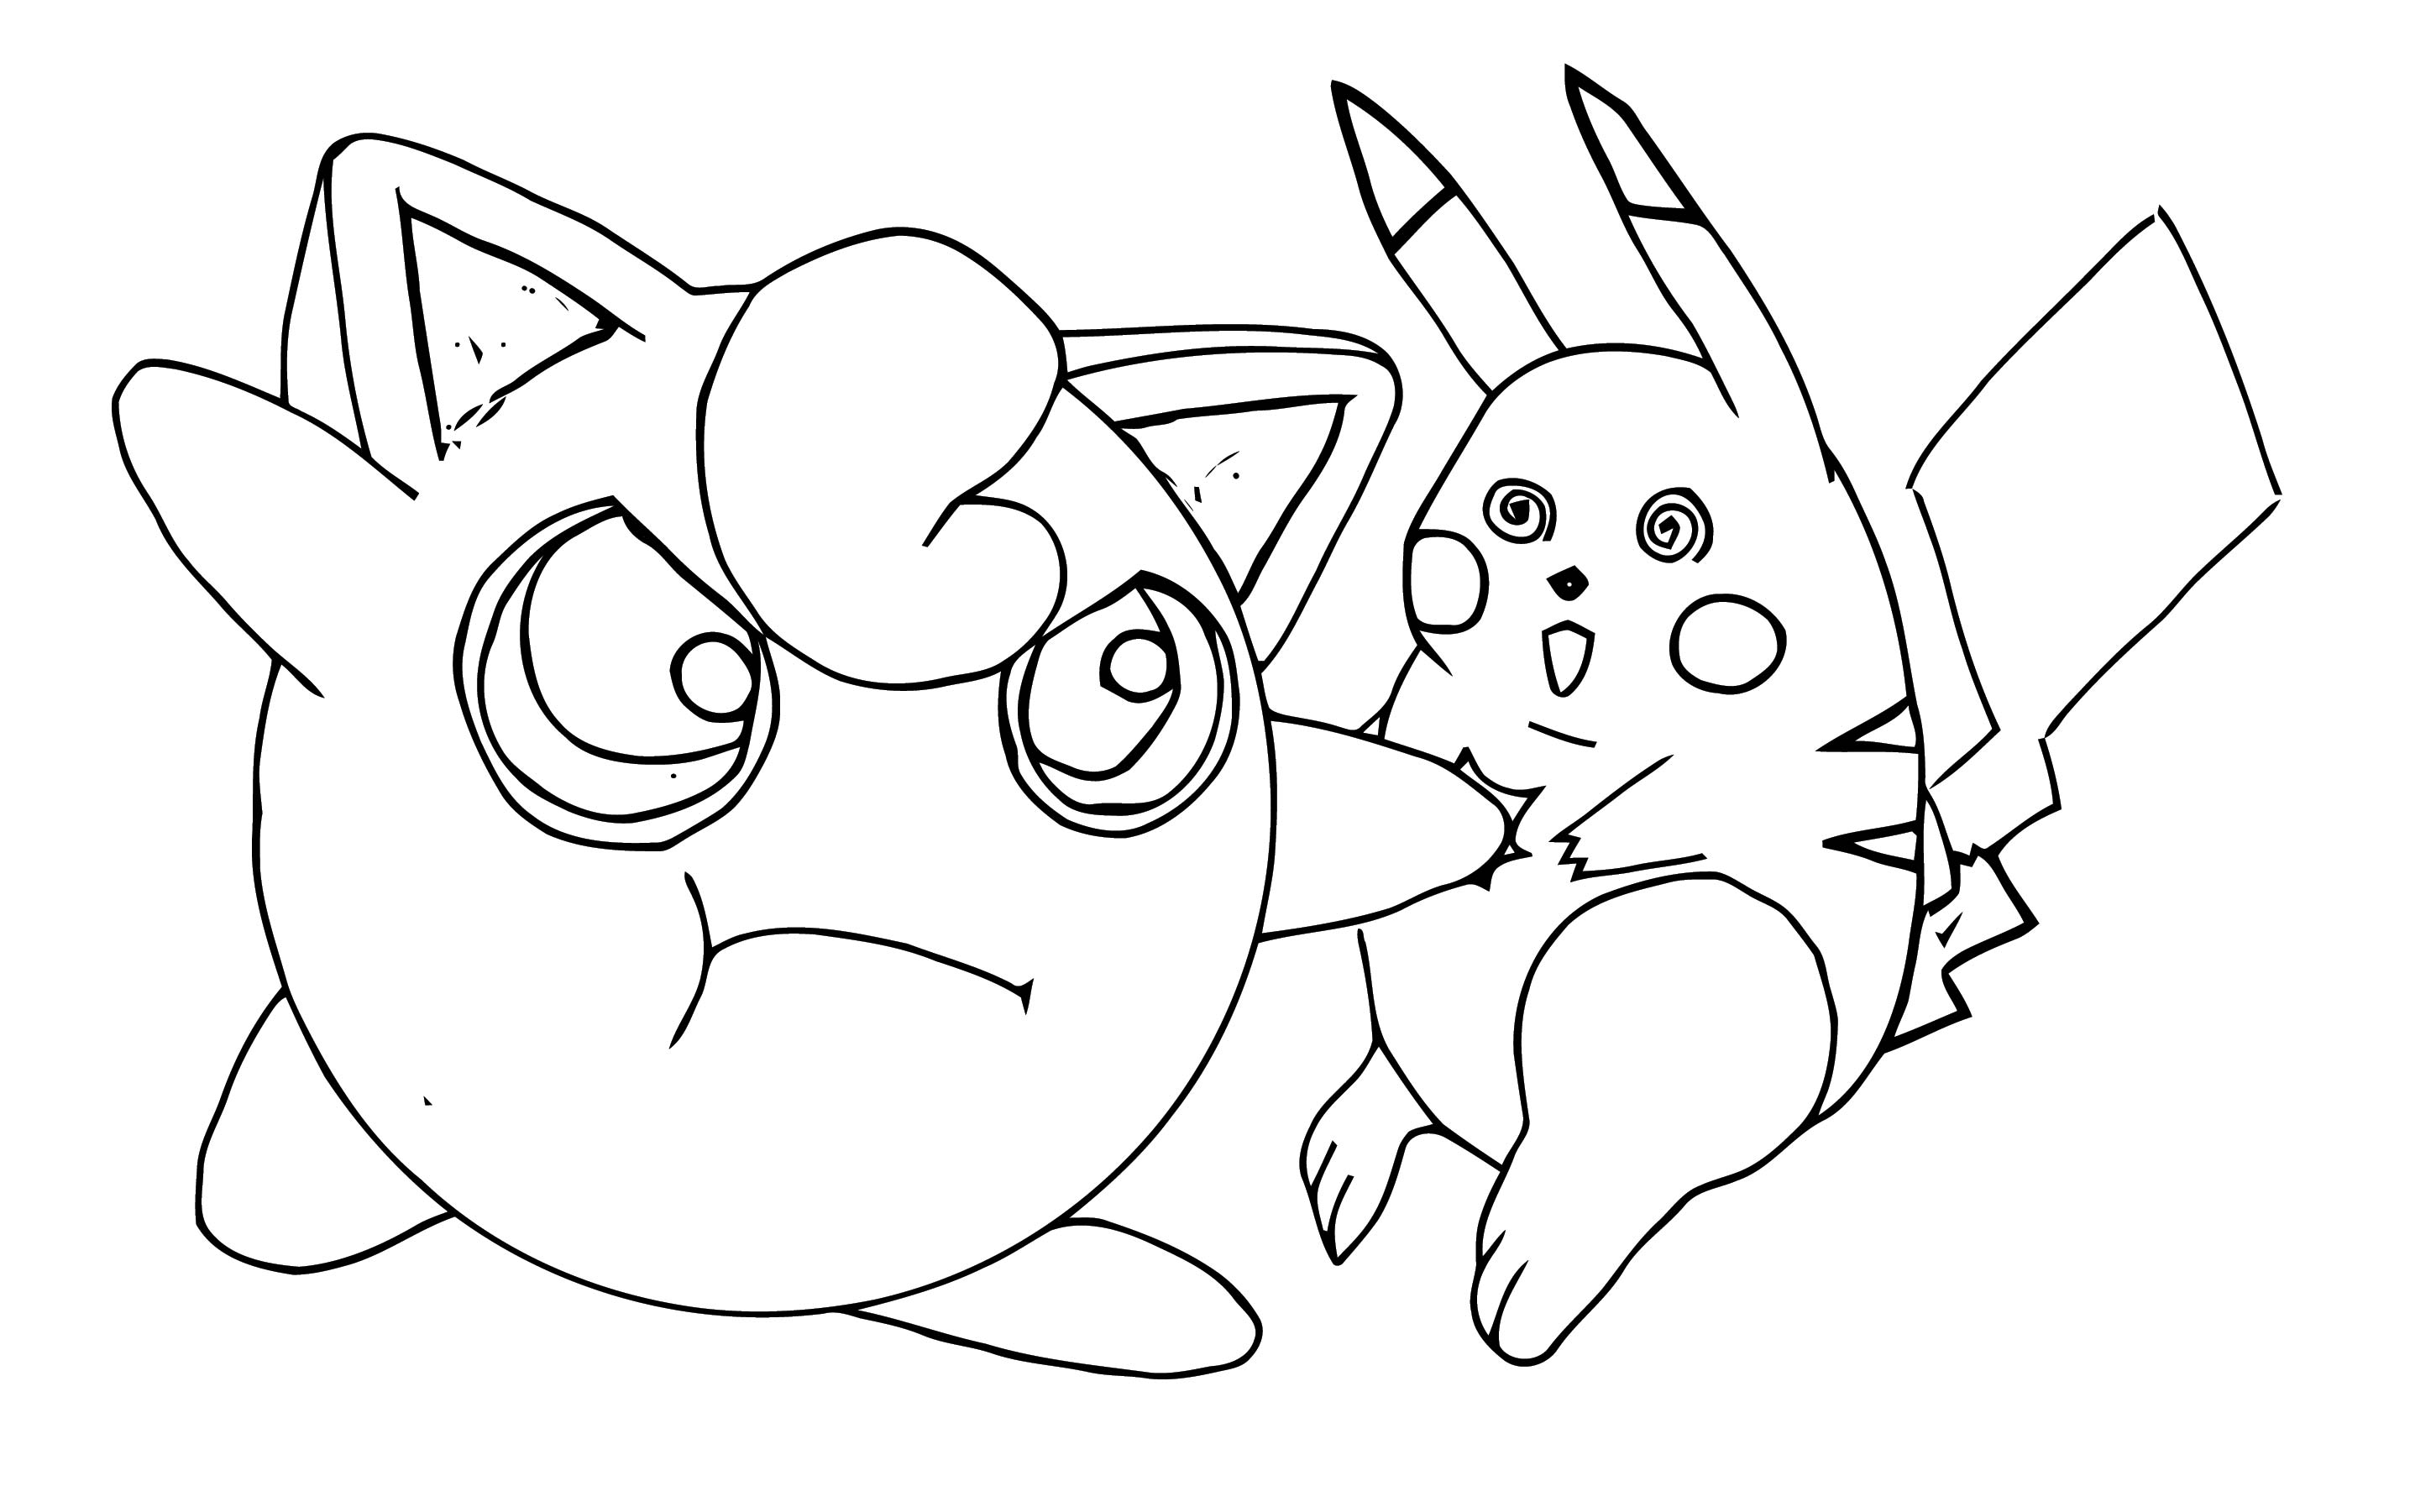 Jigglypuff Hates Pikachu Coloring Page